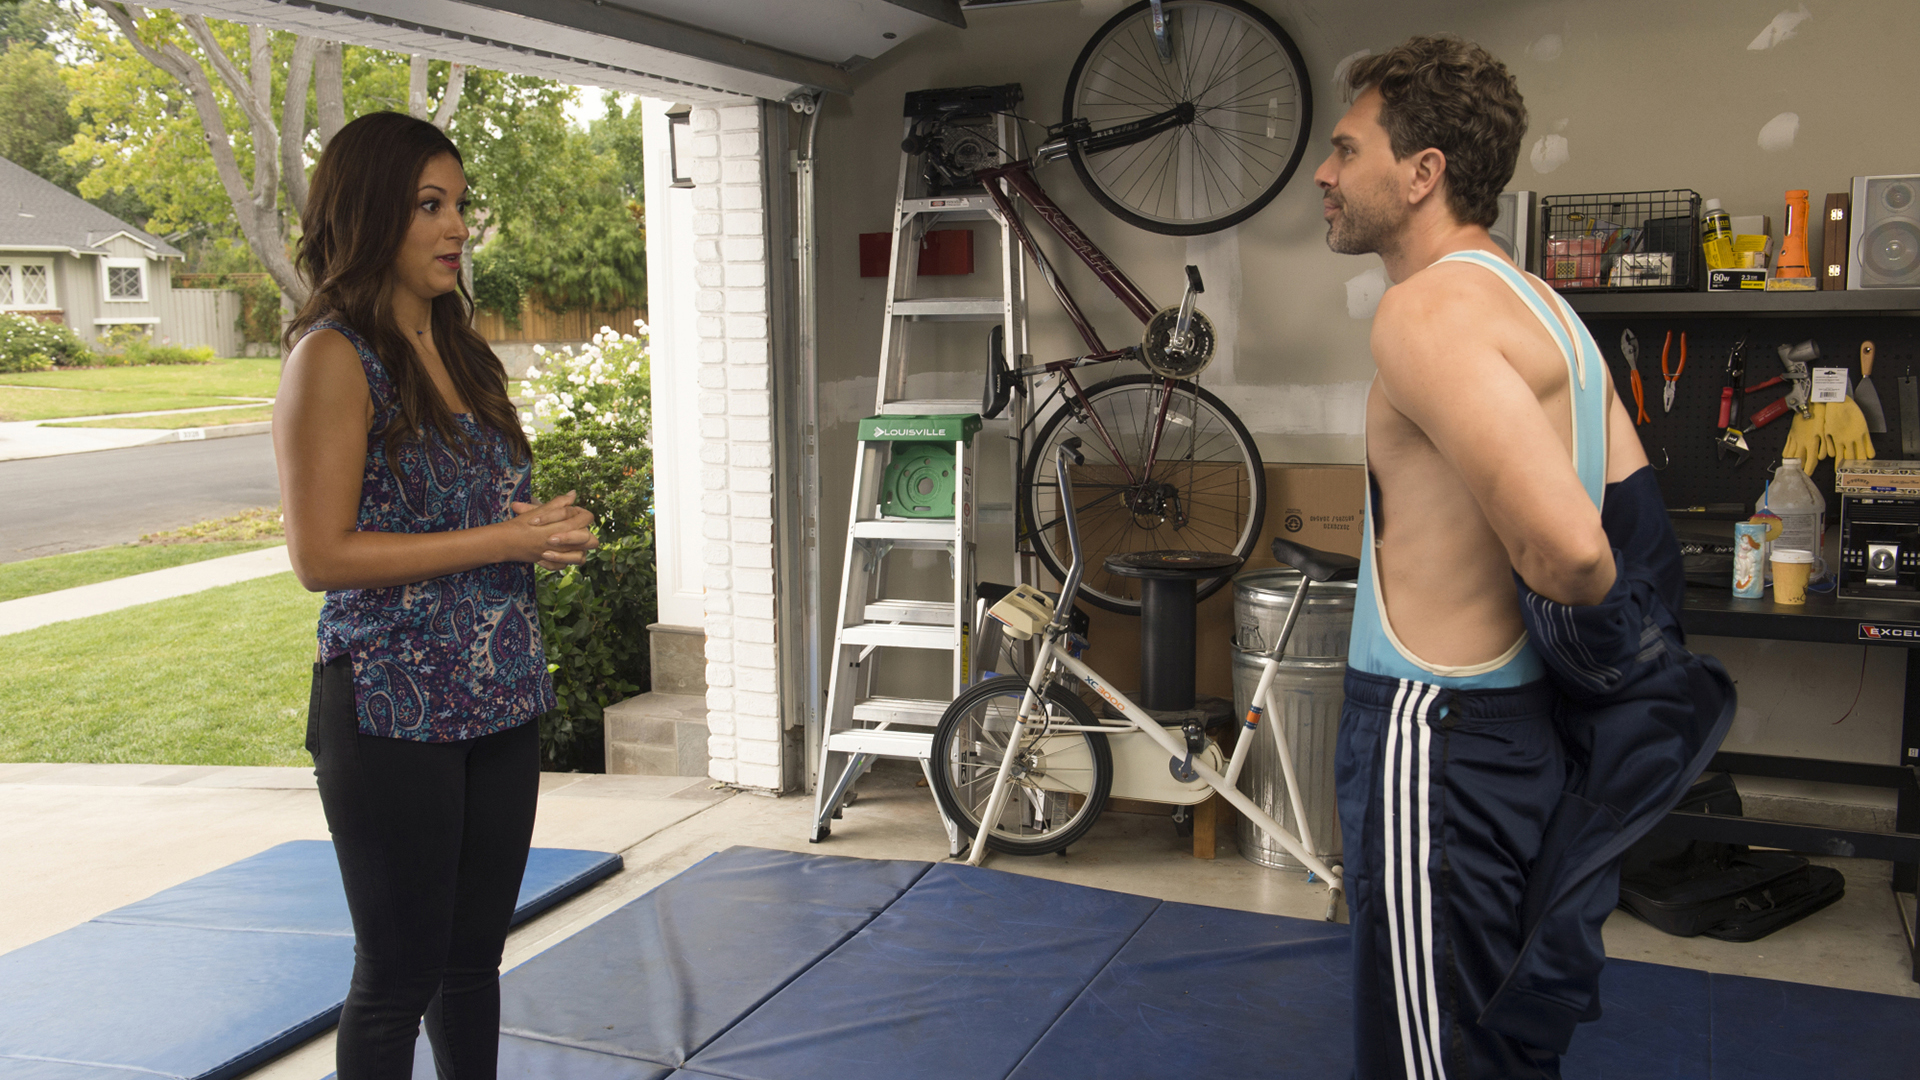 Matt is ready to break out his onesie and wrestle for the chance to be Colleen's only roommate.